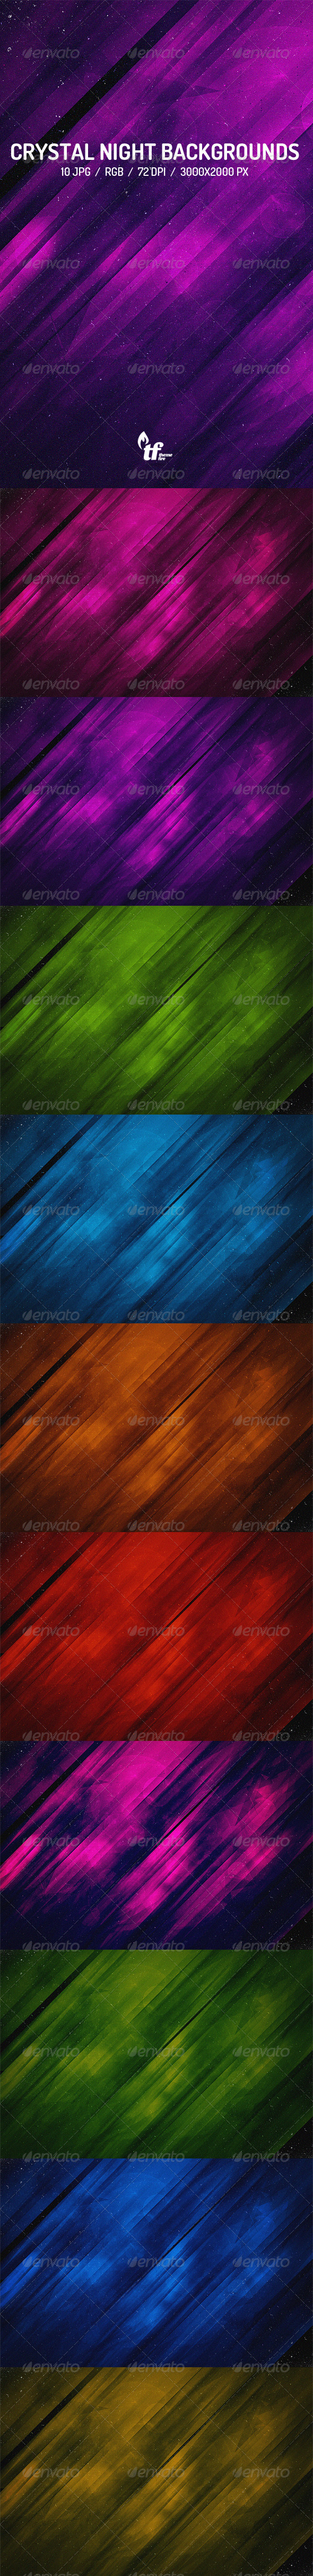 GraphicRiver Crystal Night Backgrounds 7791236